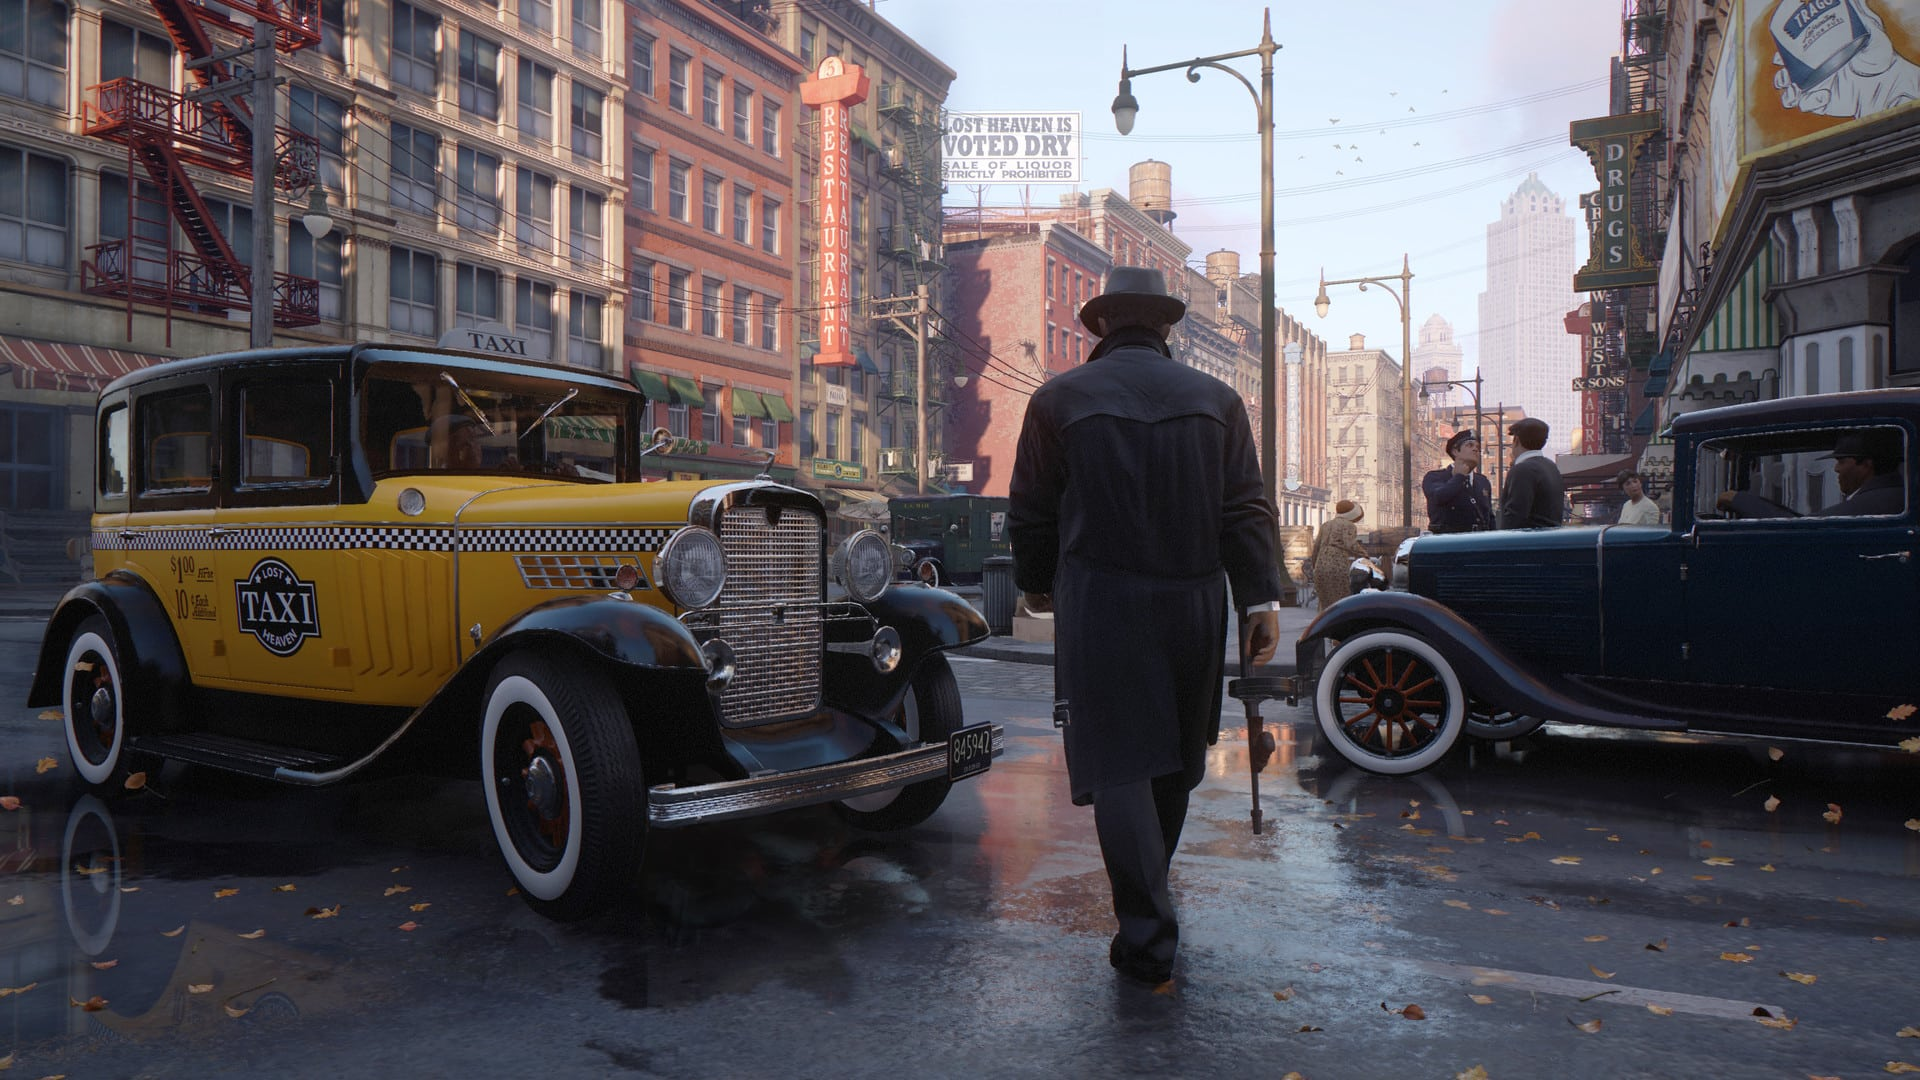 Mafia: Definitive Edition review Hangar 13 2K modernized gameplay in the remake helps and hurts